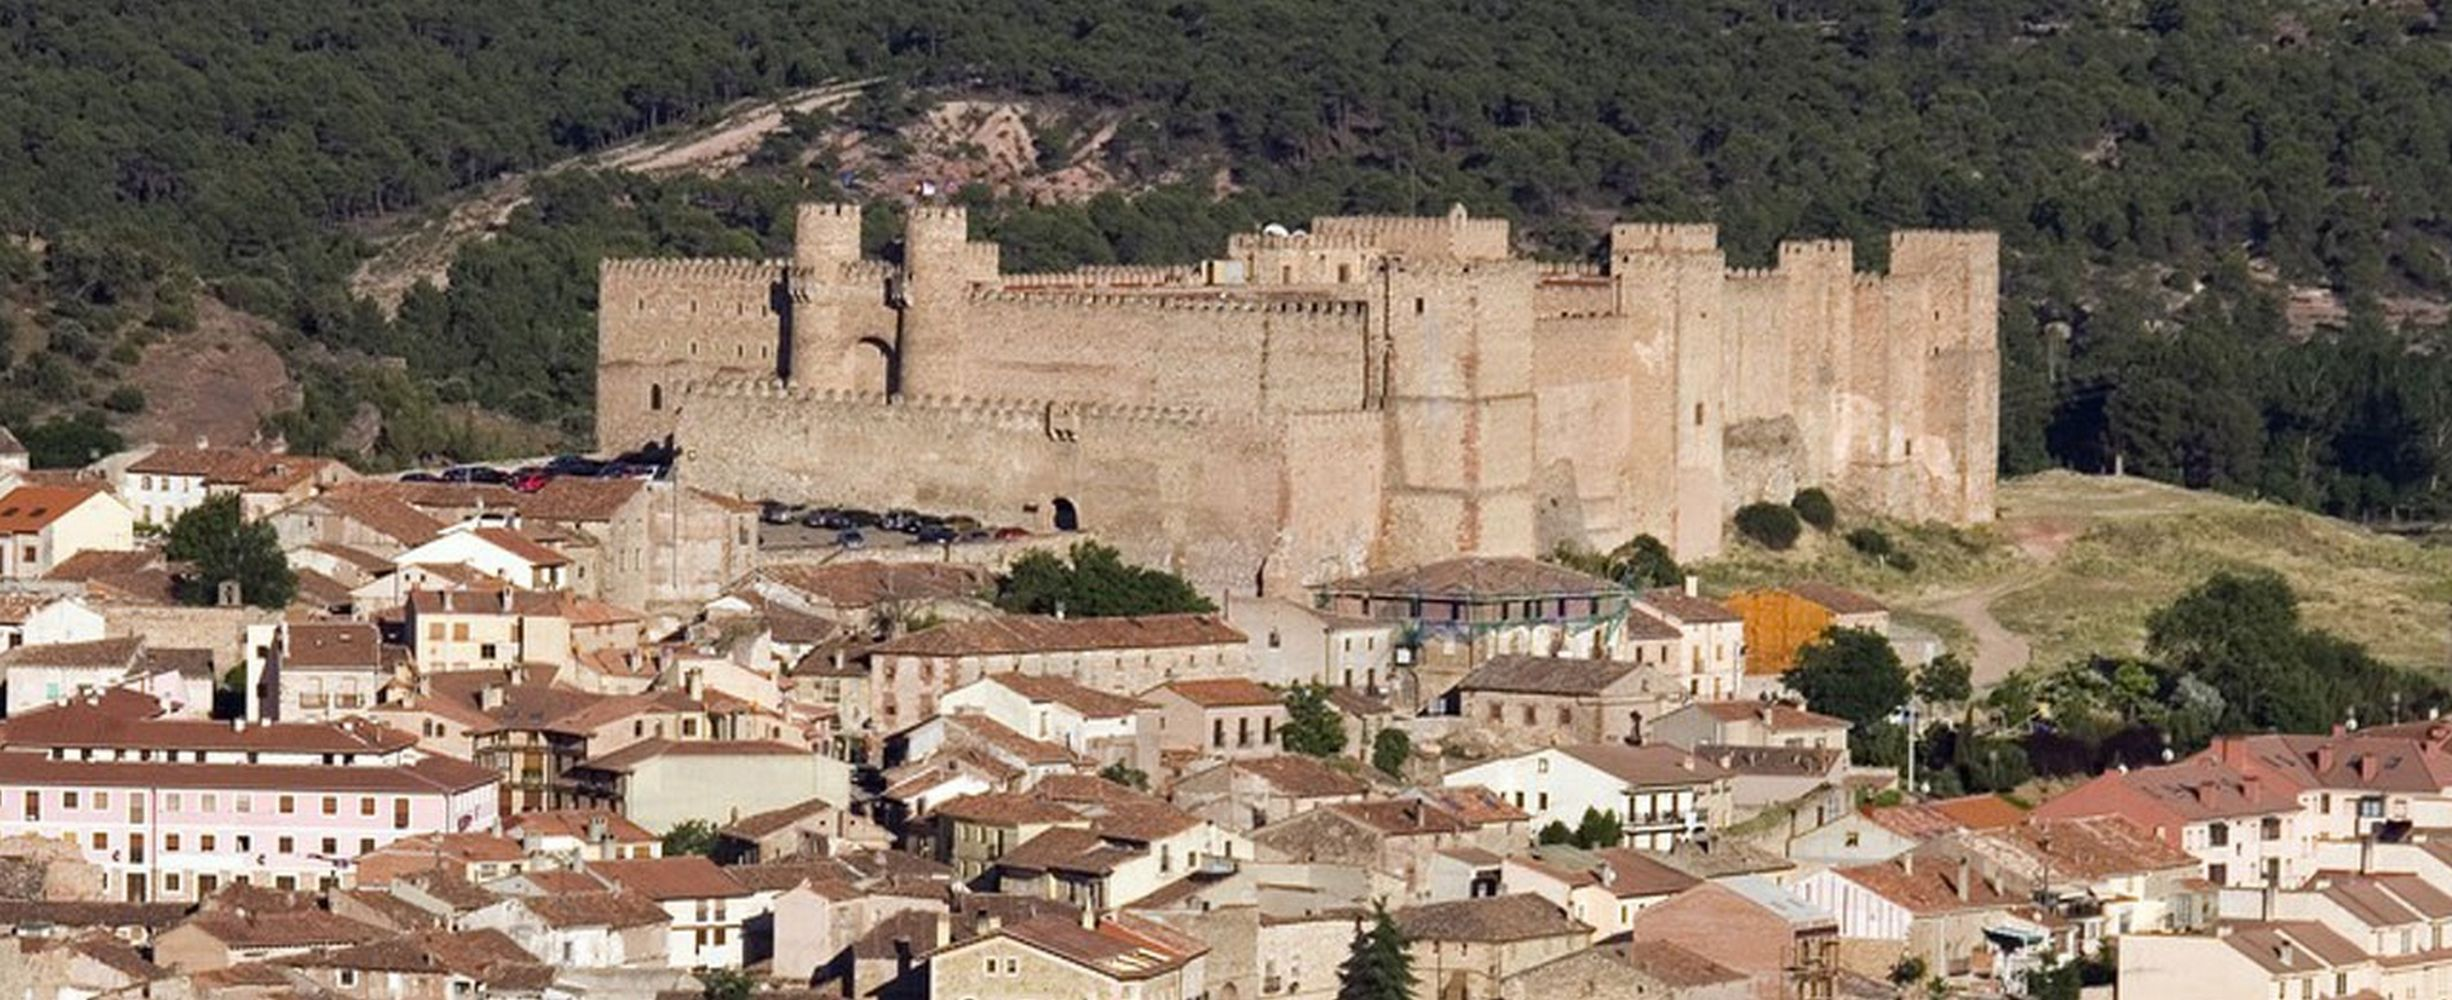 Sigüenza Castle and Town, Spain